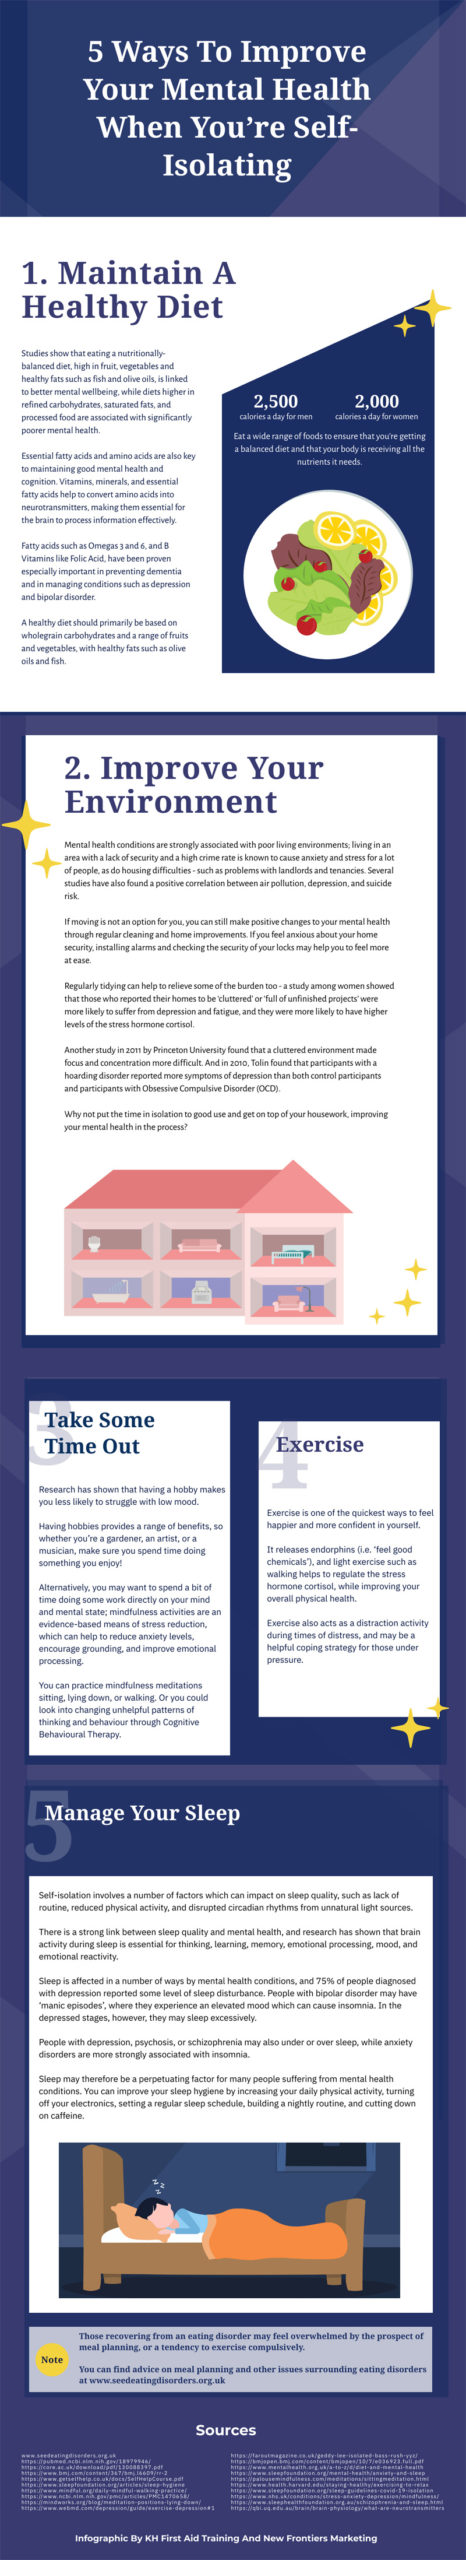 5 ways to improve your mental health when youre self isolating infographic